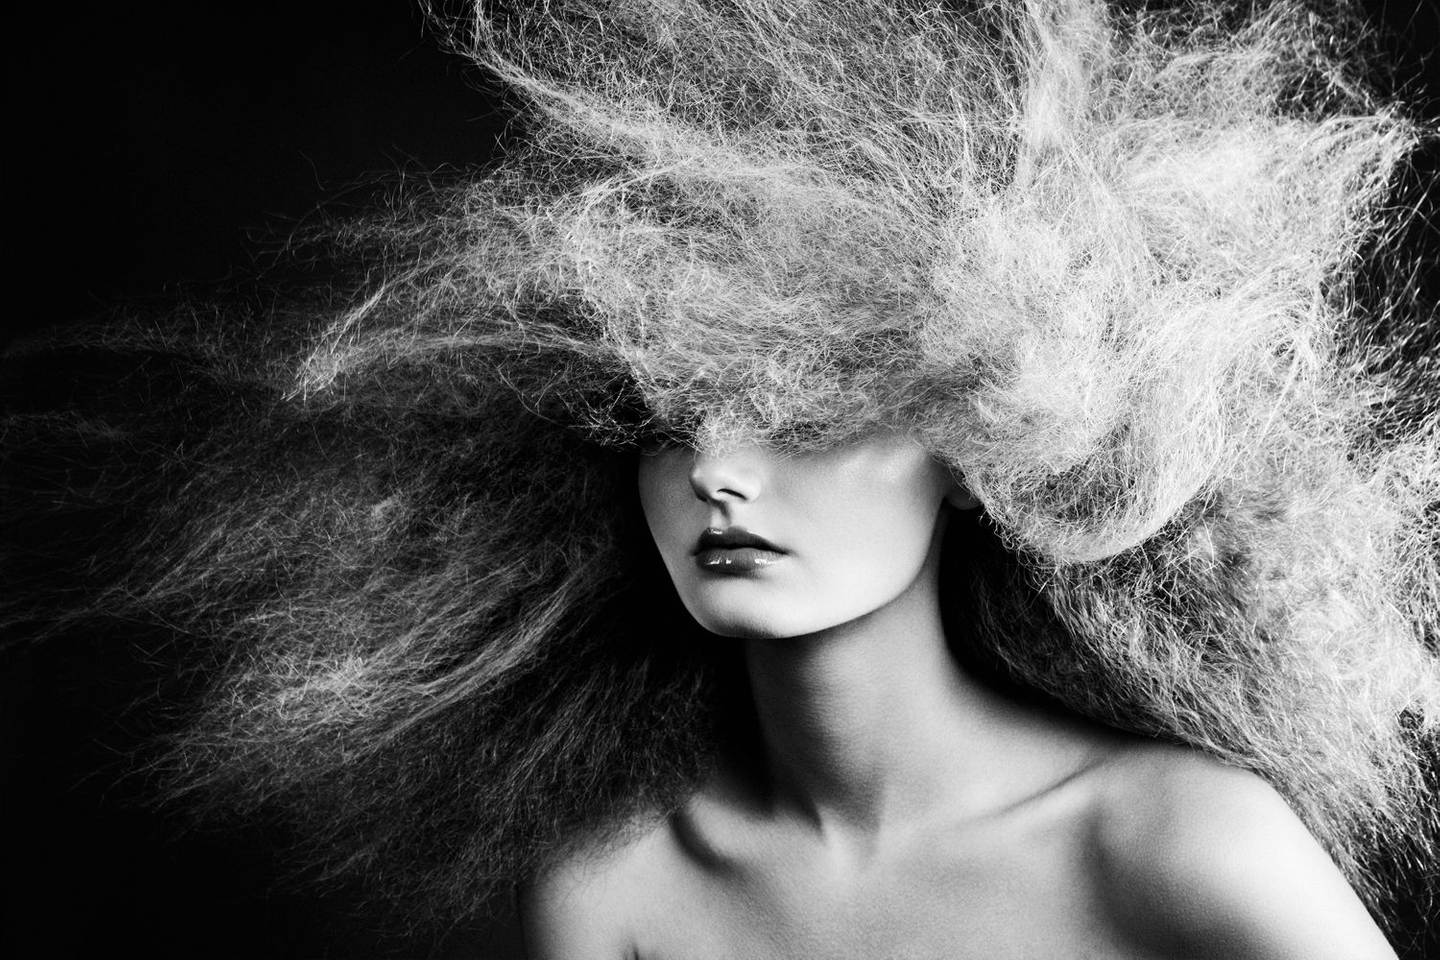 HAIR Texture in black and white